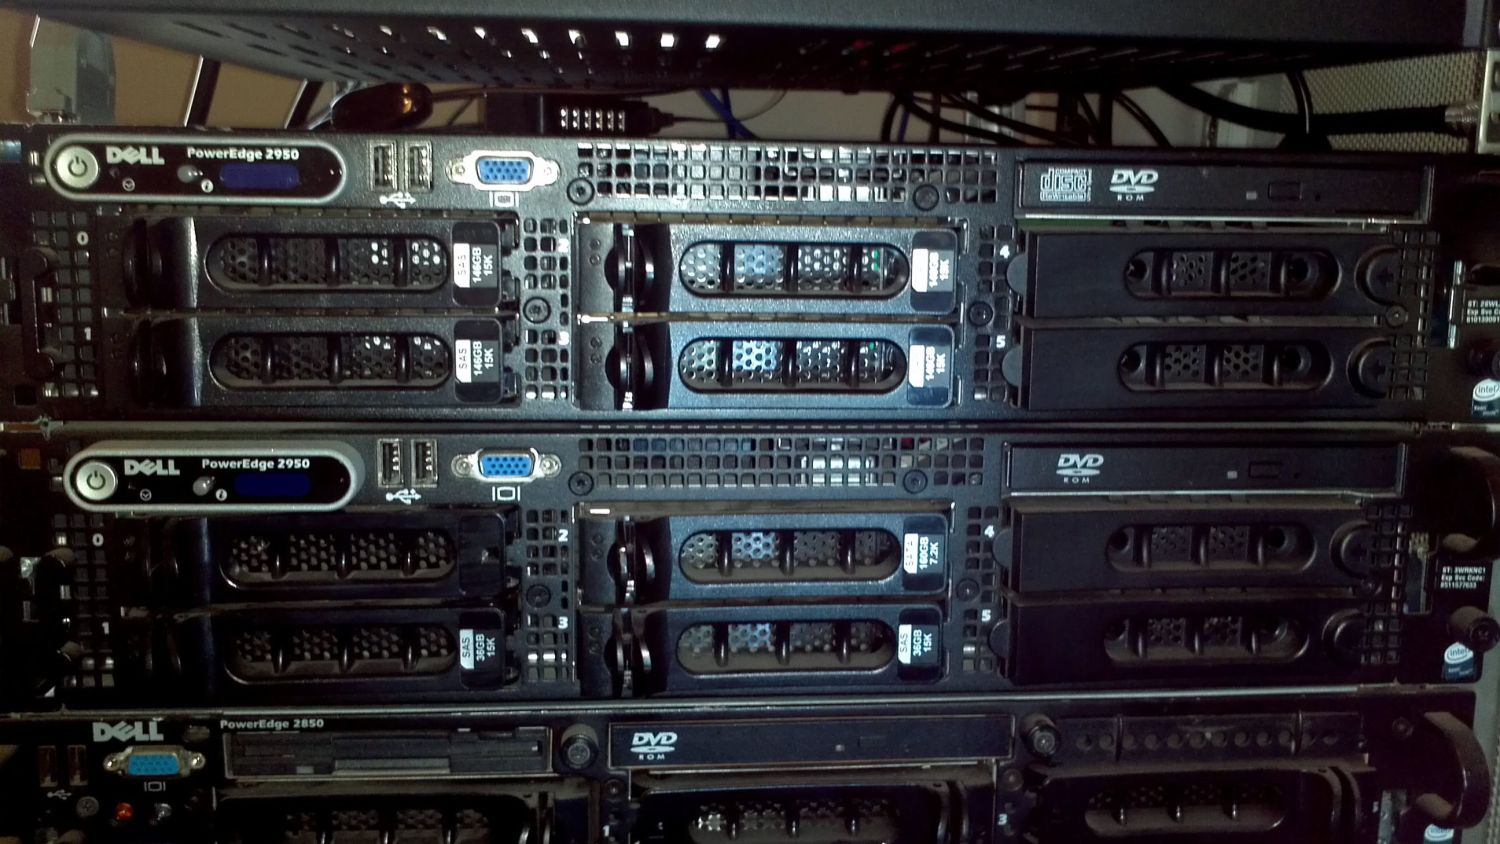 Dell Poweredge 2950 Image